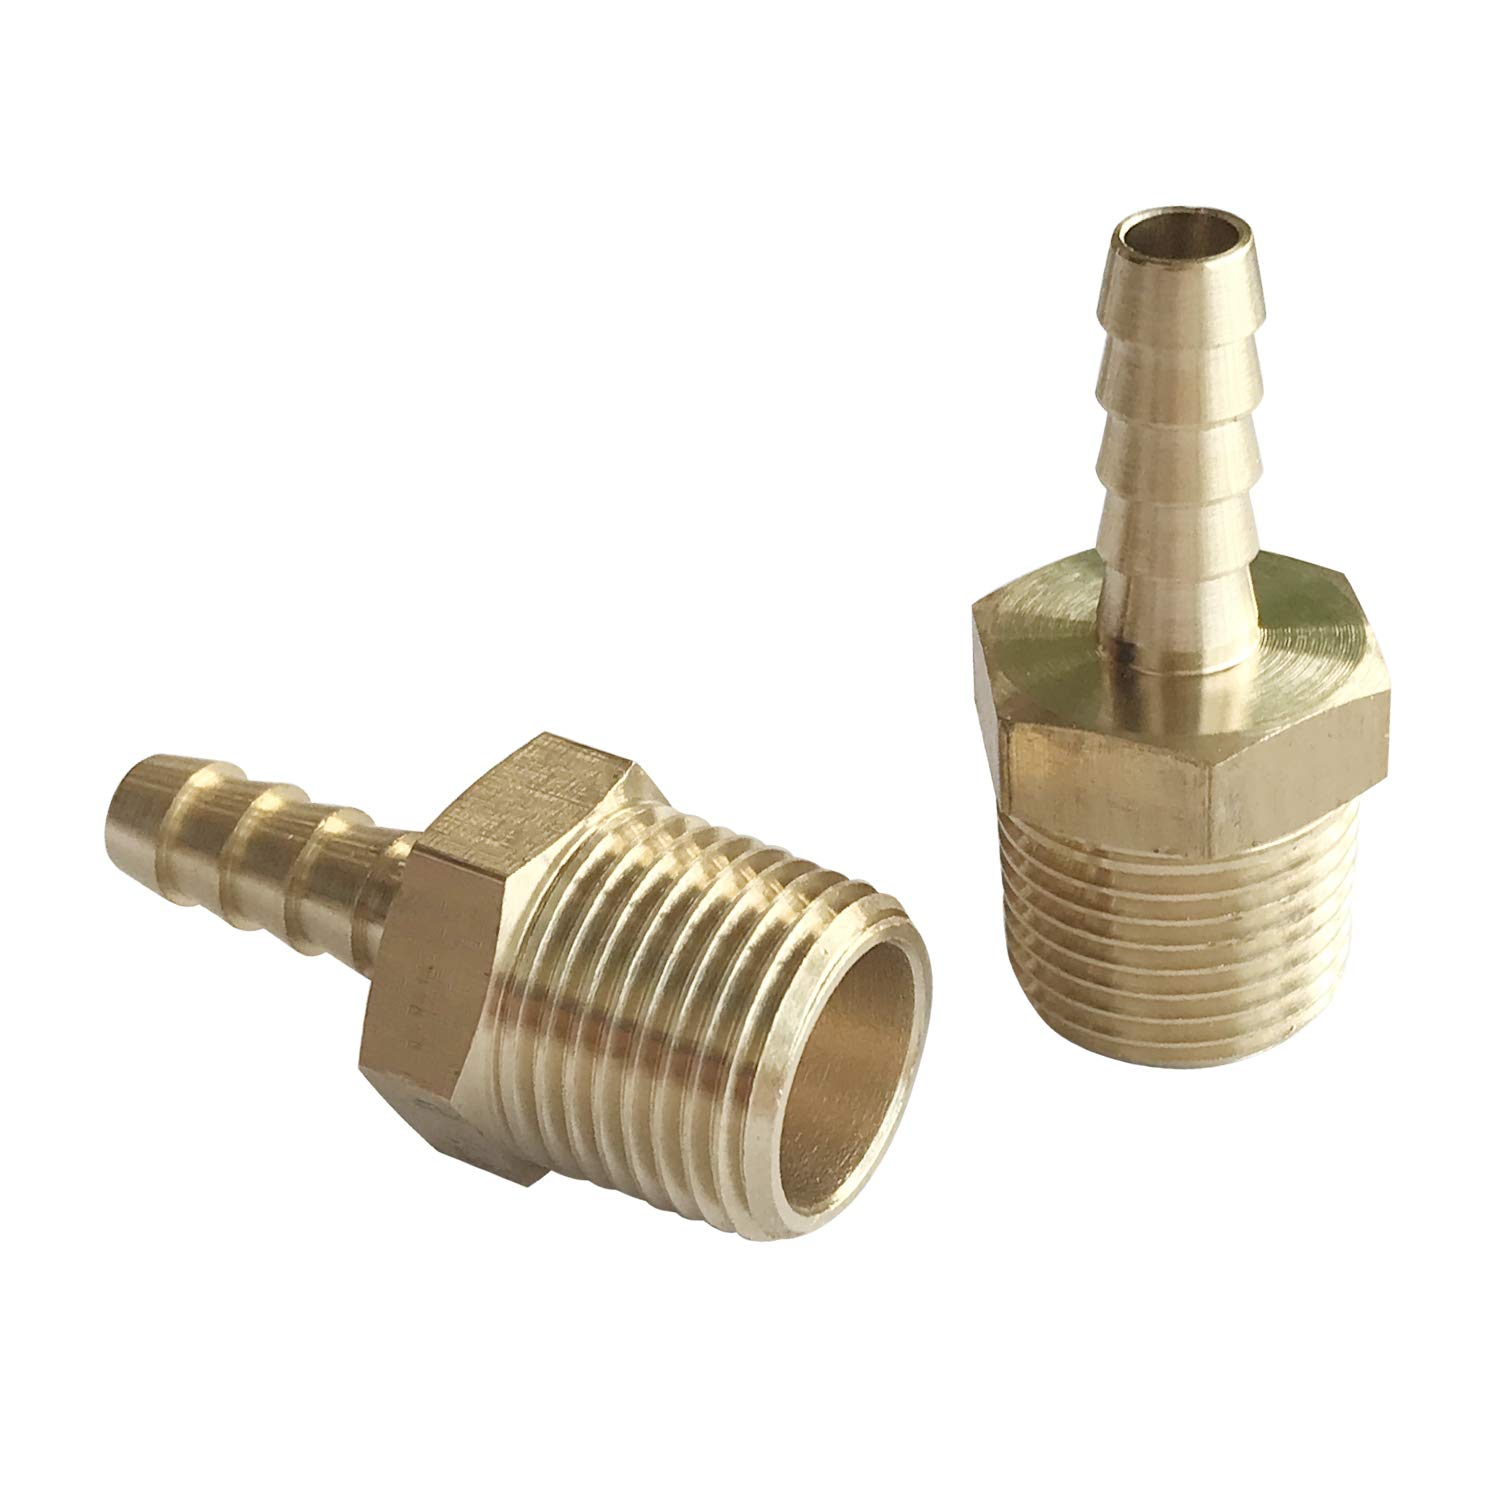 YUEPIN 2 Pack Barb Hose Fitting Brass Pipe Fitting Connector Fuel Gas Water 5//16 Barb x 1//2 NPT Male